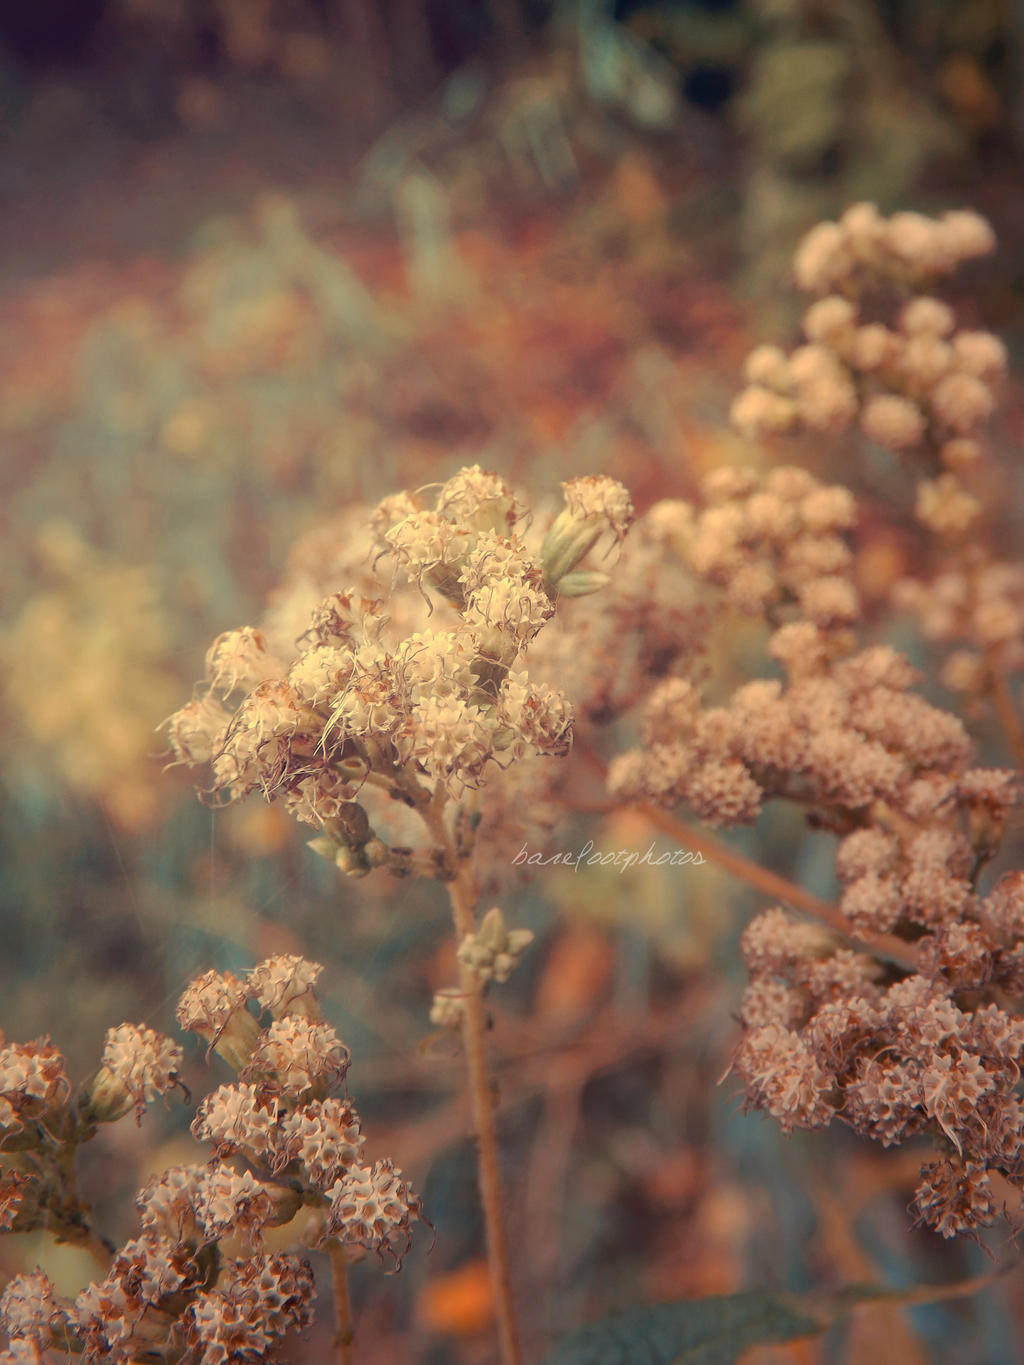 Vintage Nature By Barefootphotos